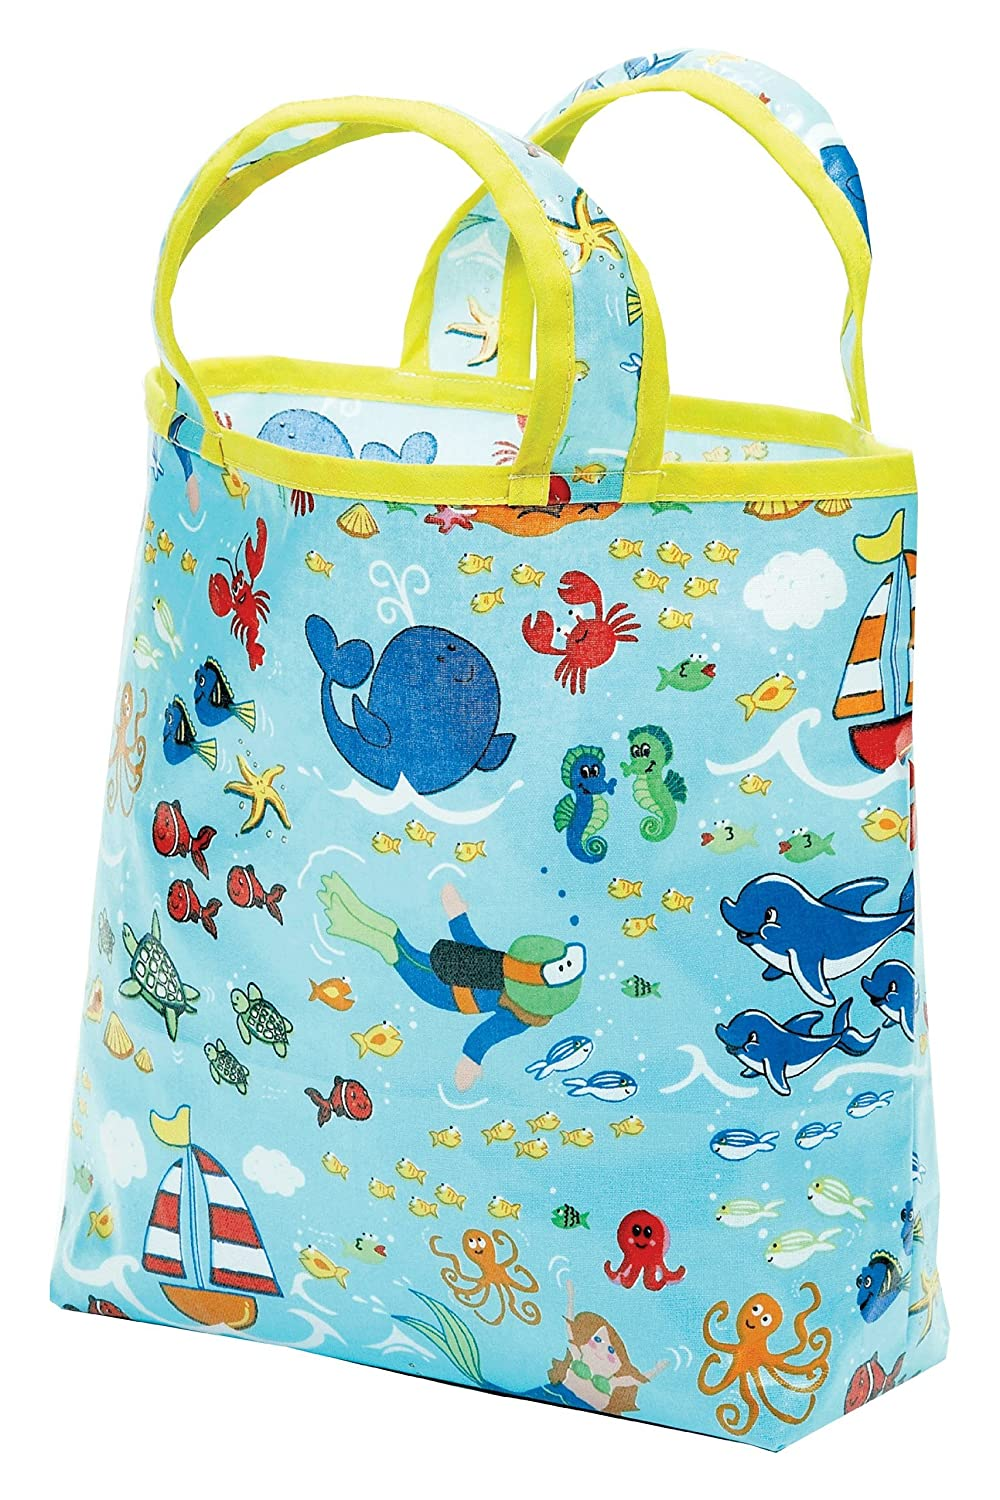 Amazon.com : Domingo bolsa de pañales, Sea Life : Baby